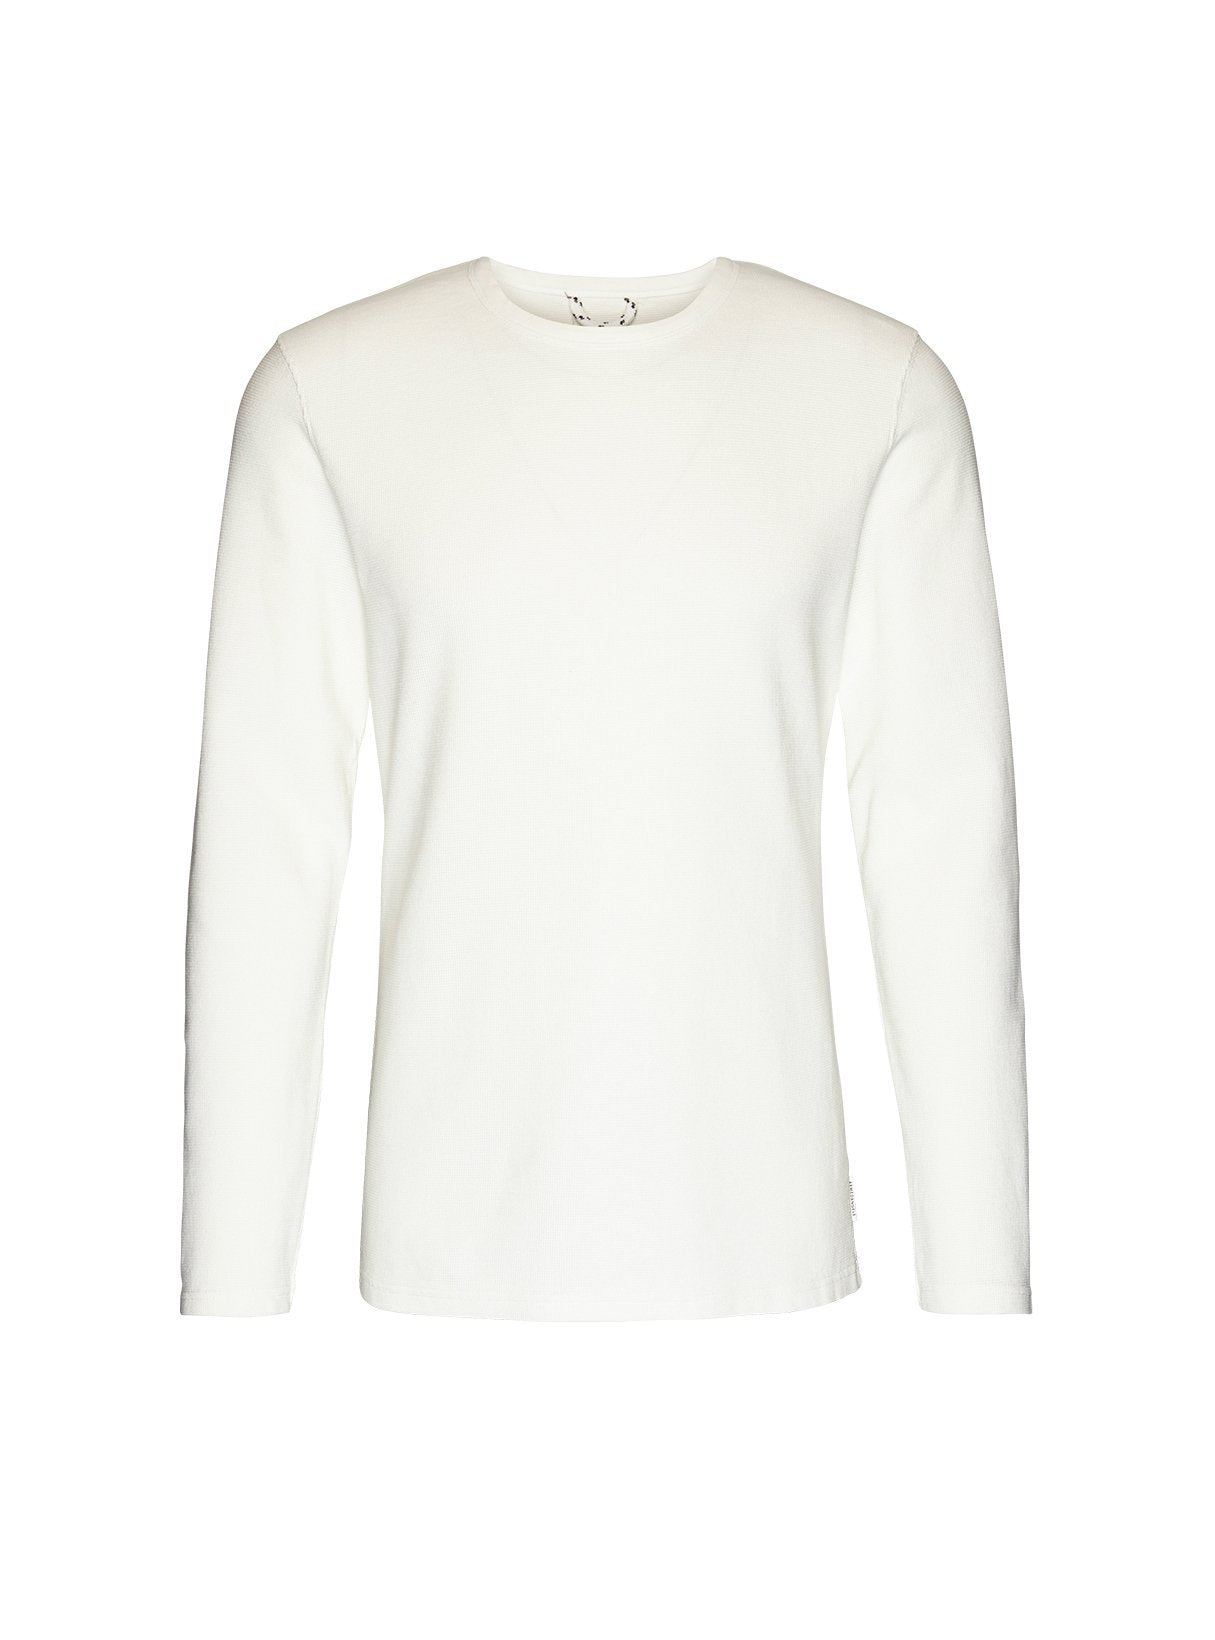 Niaam - sweater - marshmallow white